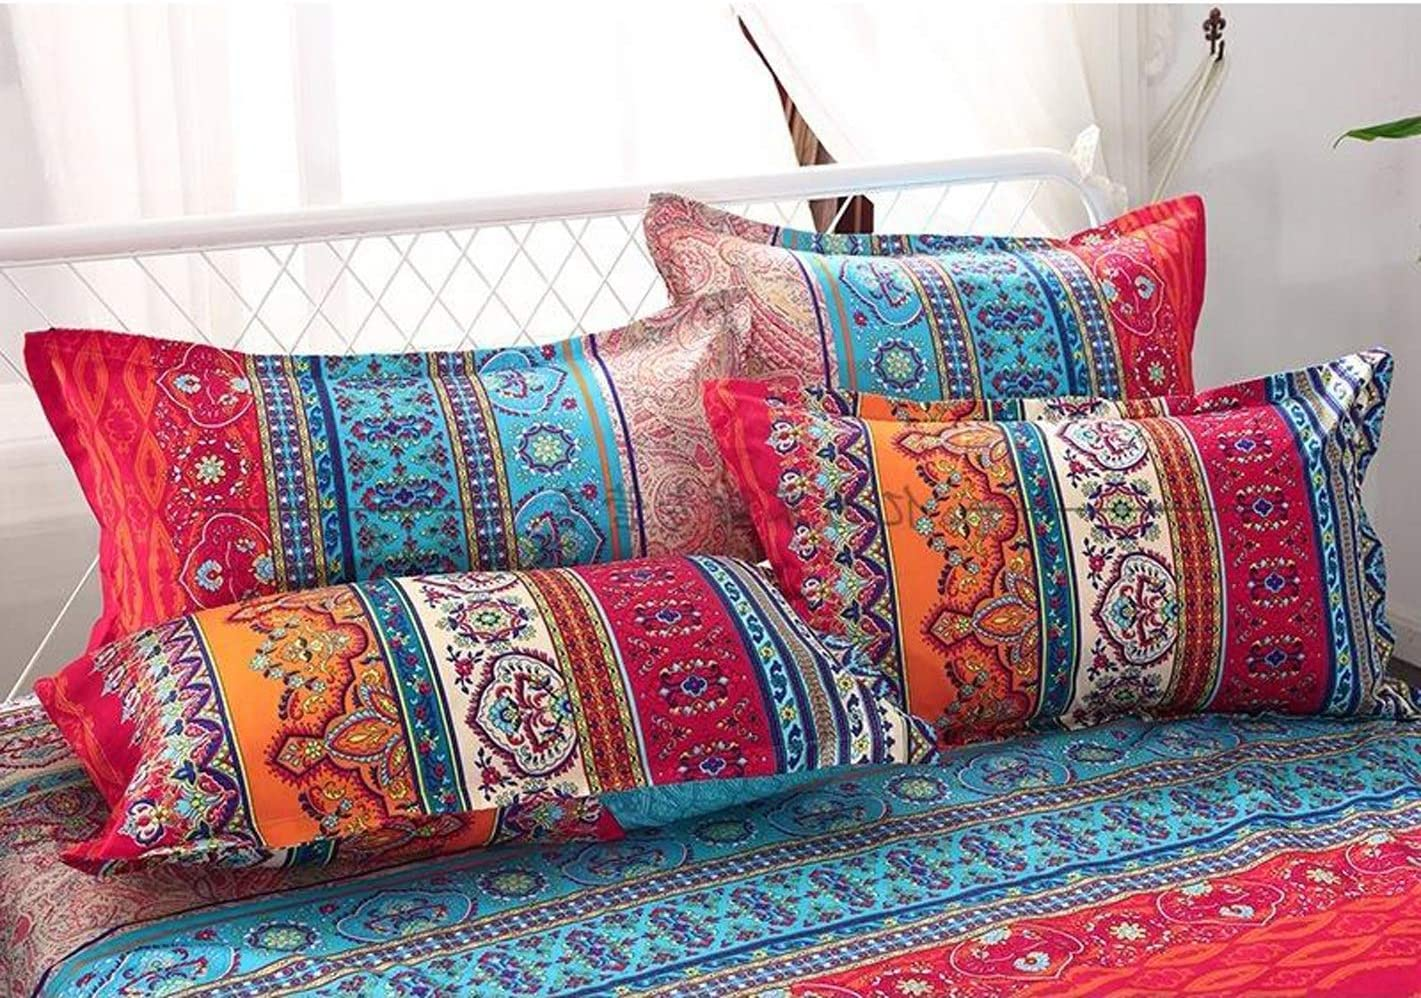 Bedding Set of 4 Quilt Covers 150x210cm Season Vintage Double Bed Cover Red Bohemian Style Covered Cotton 1 Quilt Cover and 2 Pillows 1 Sheet